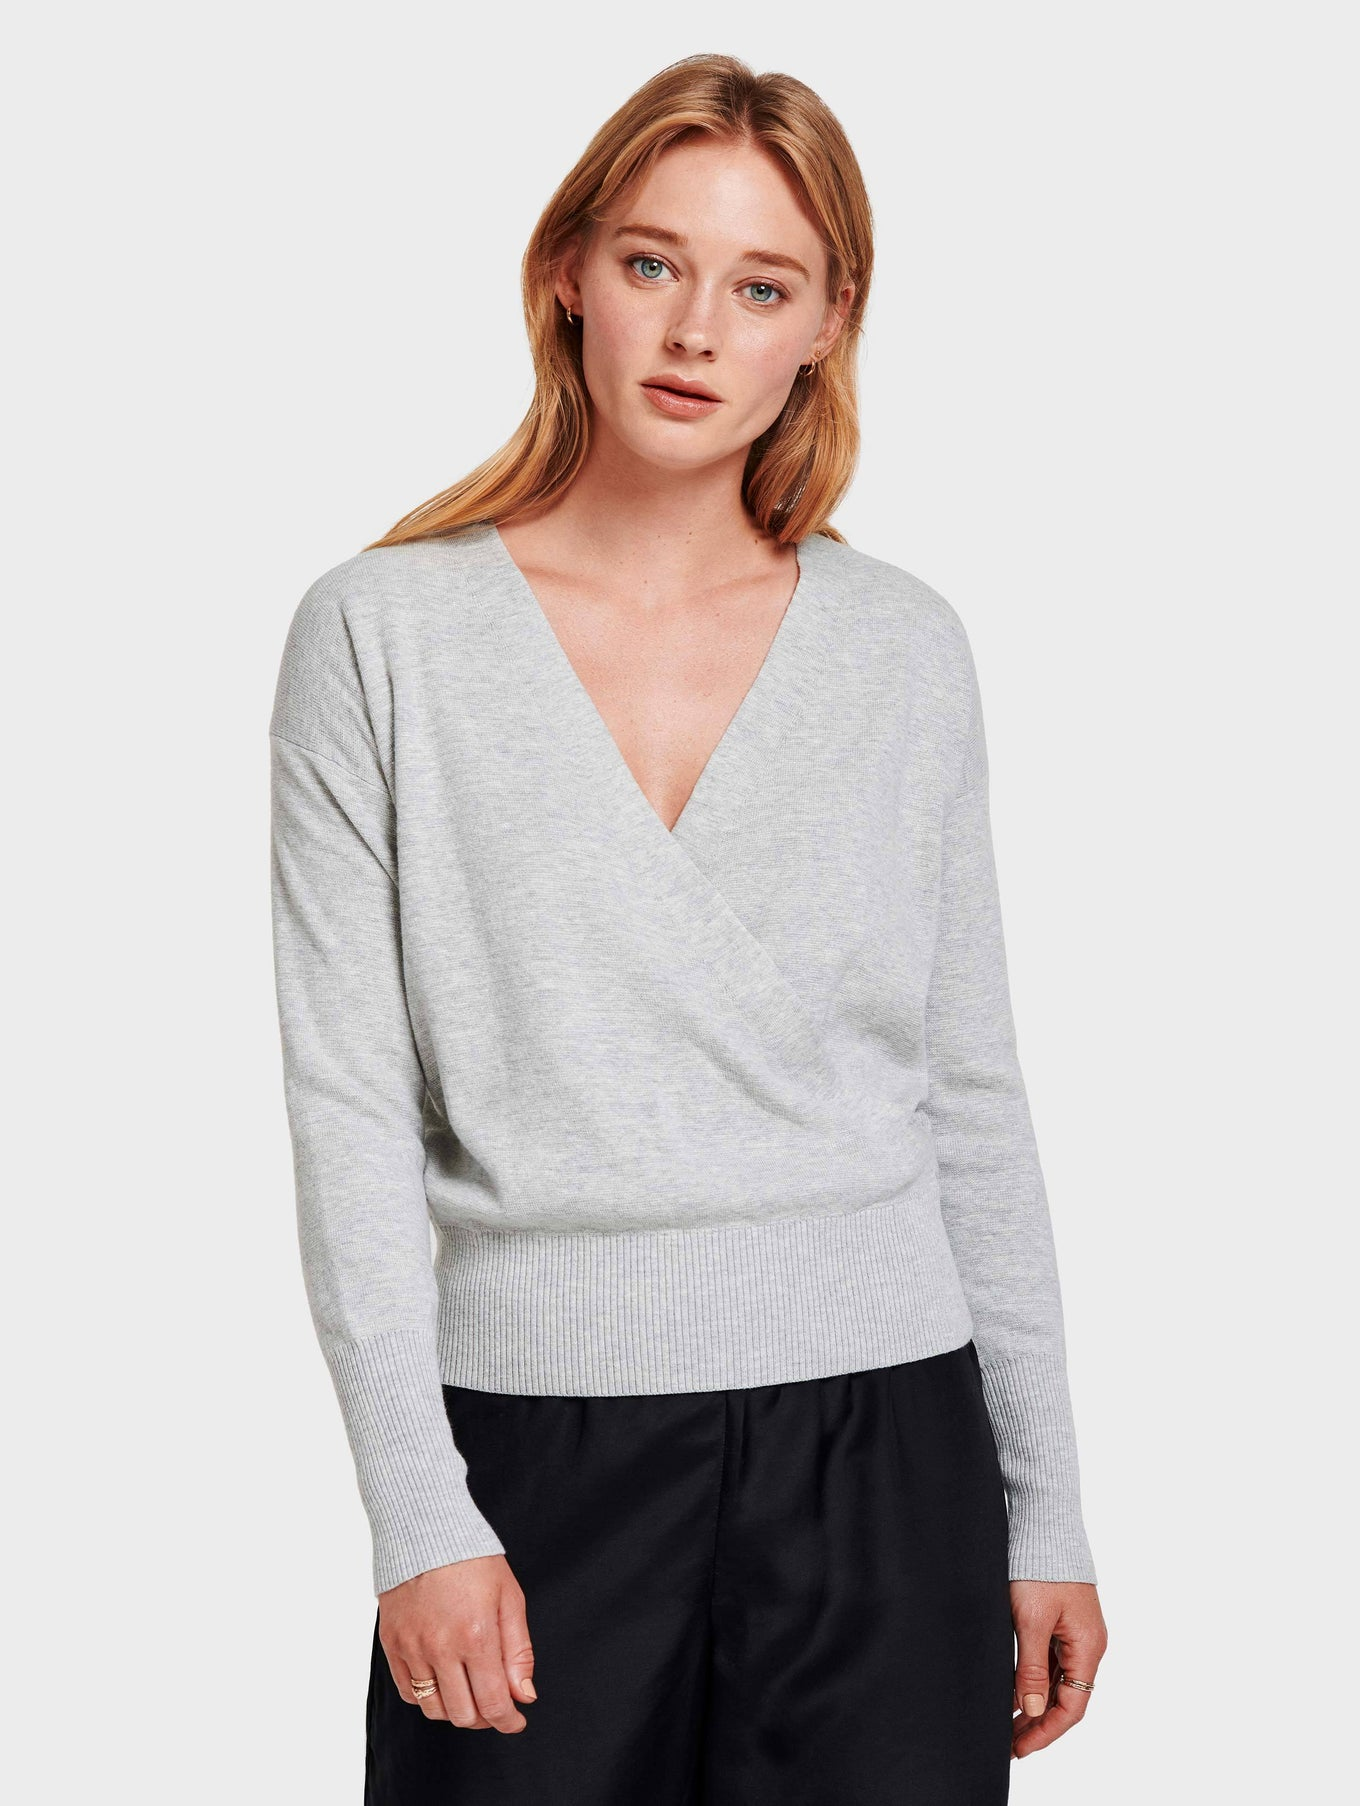 Faux Wrap Pullover - Chromium Heather - Image 1